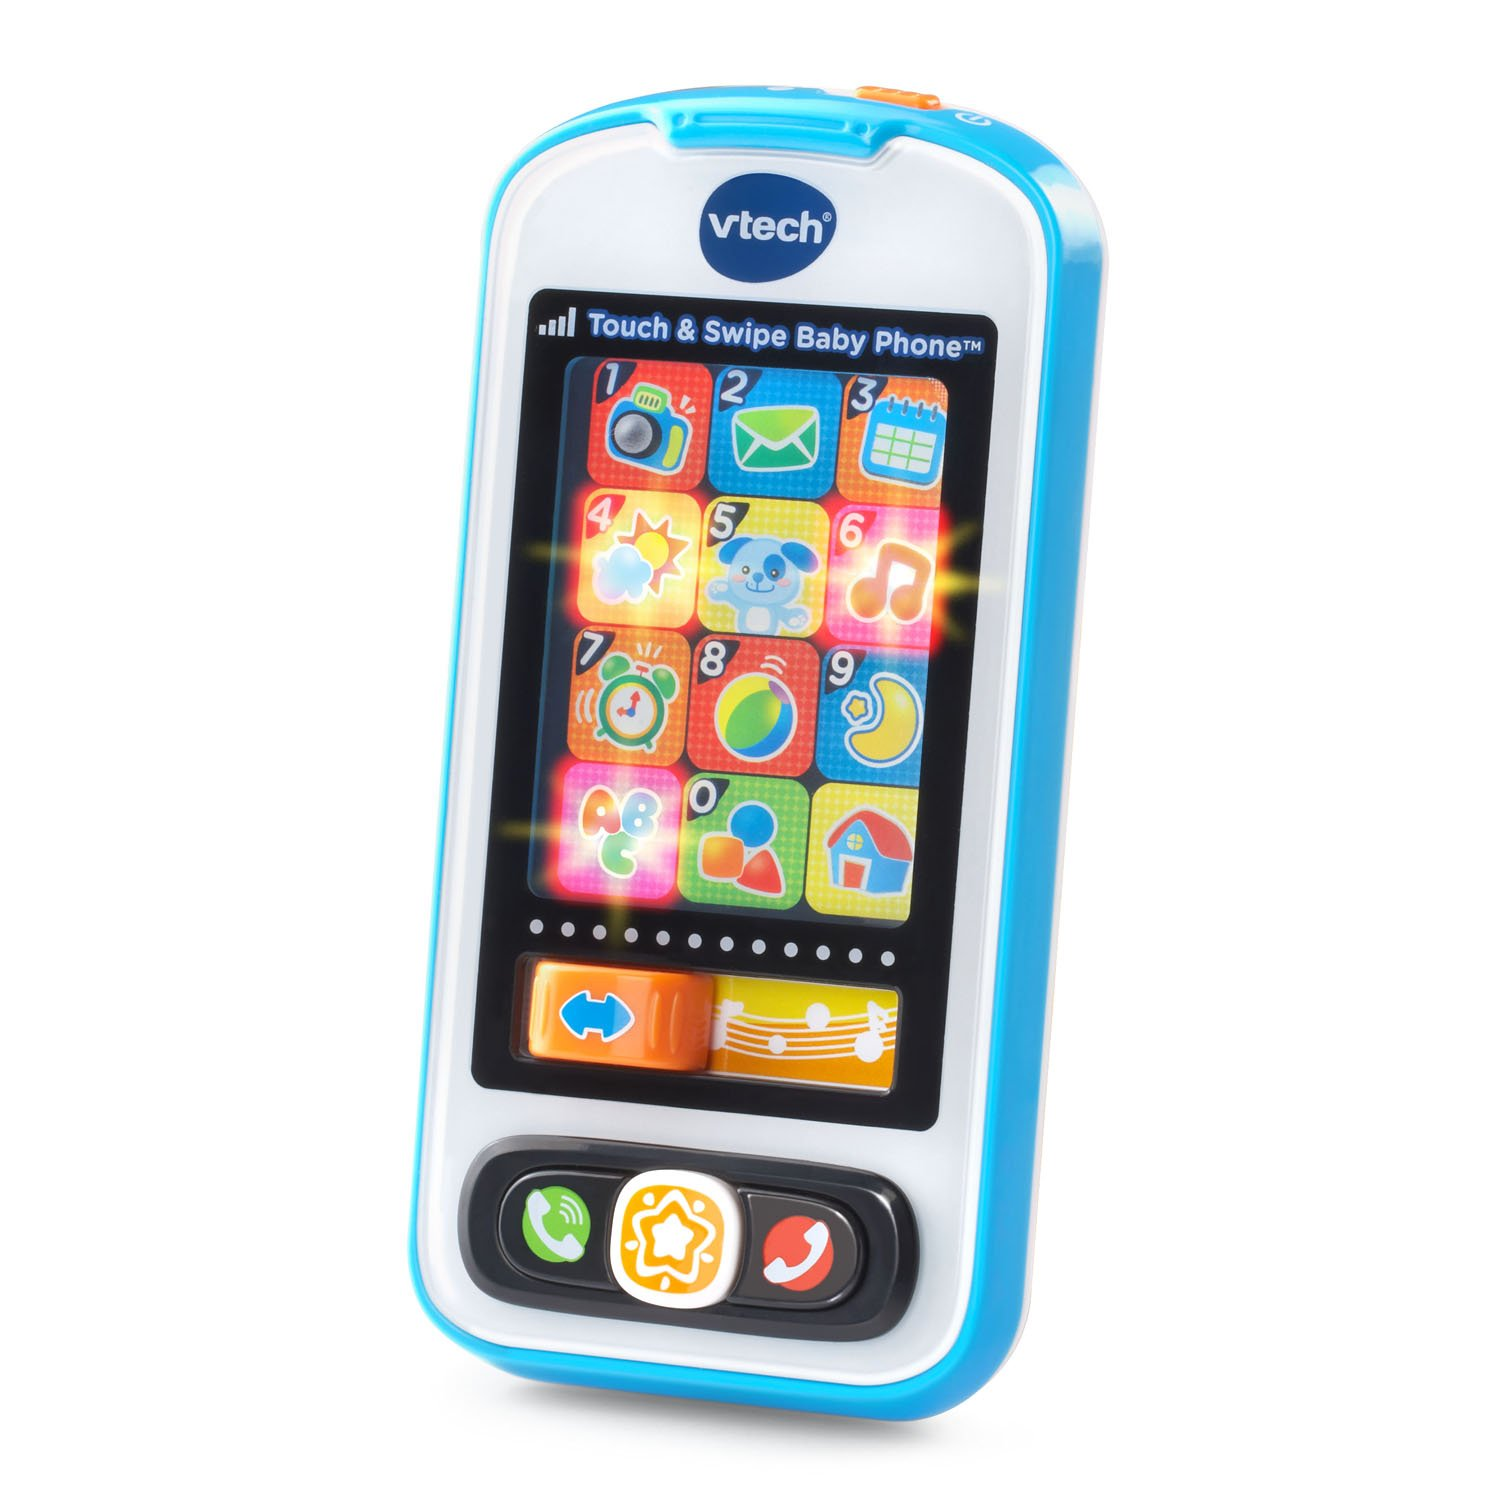 VTech Touch & Swipe Baby Phone Amazon Exclusive, Blue